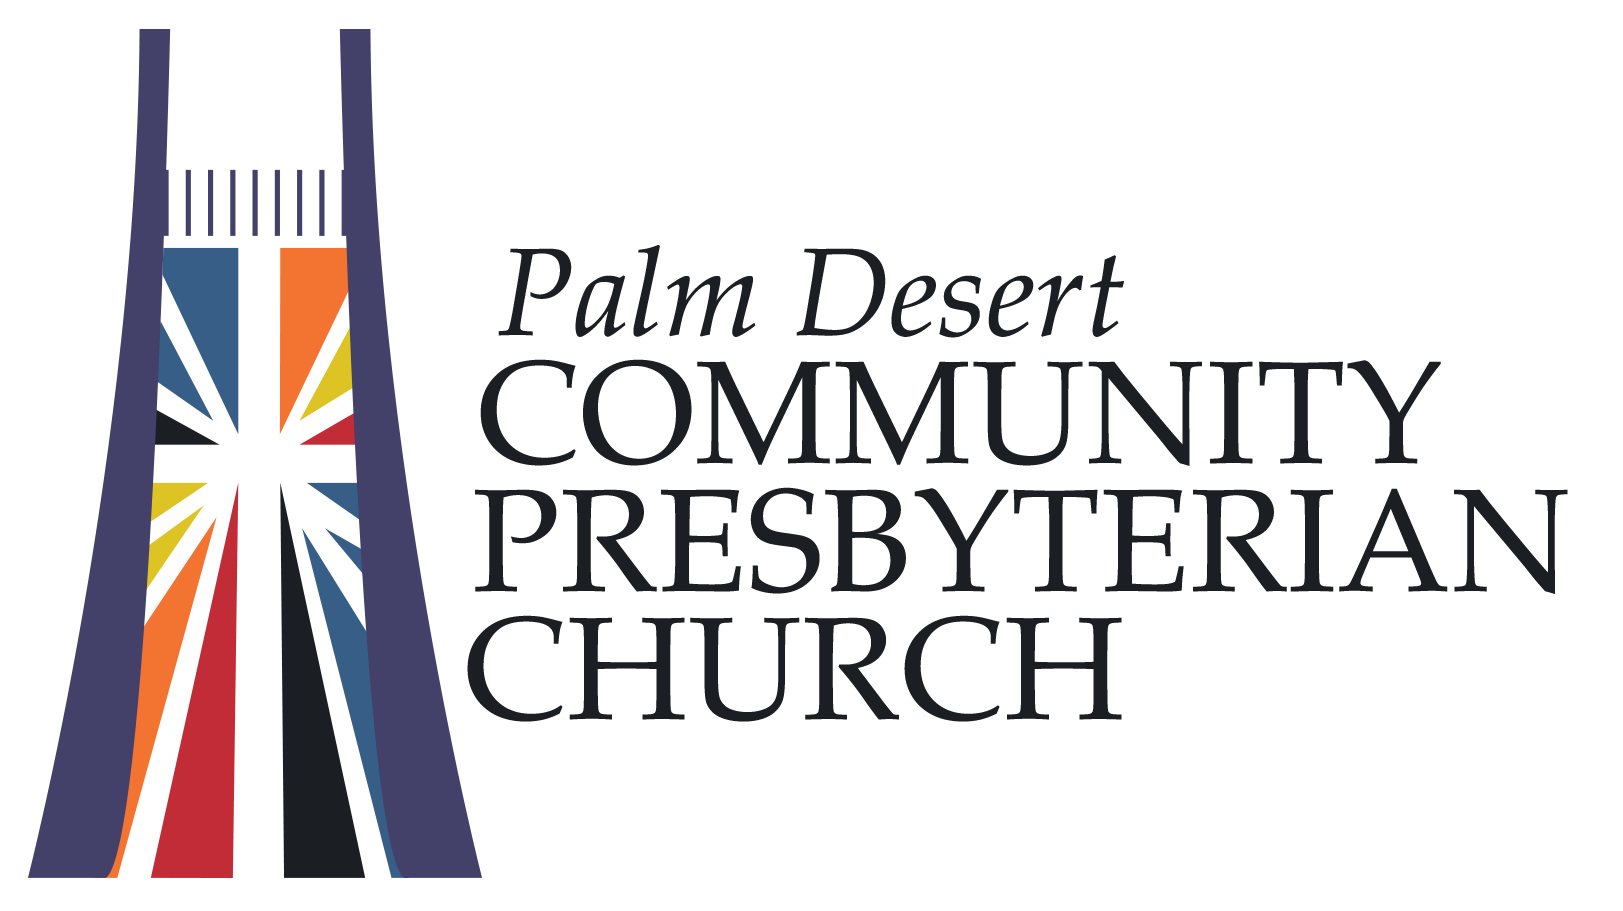 Palm Desert Community Pres. Footer Logo